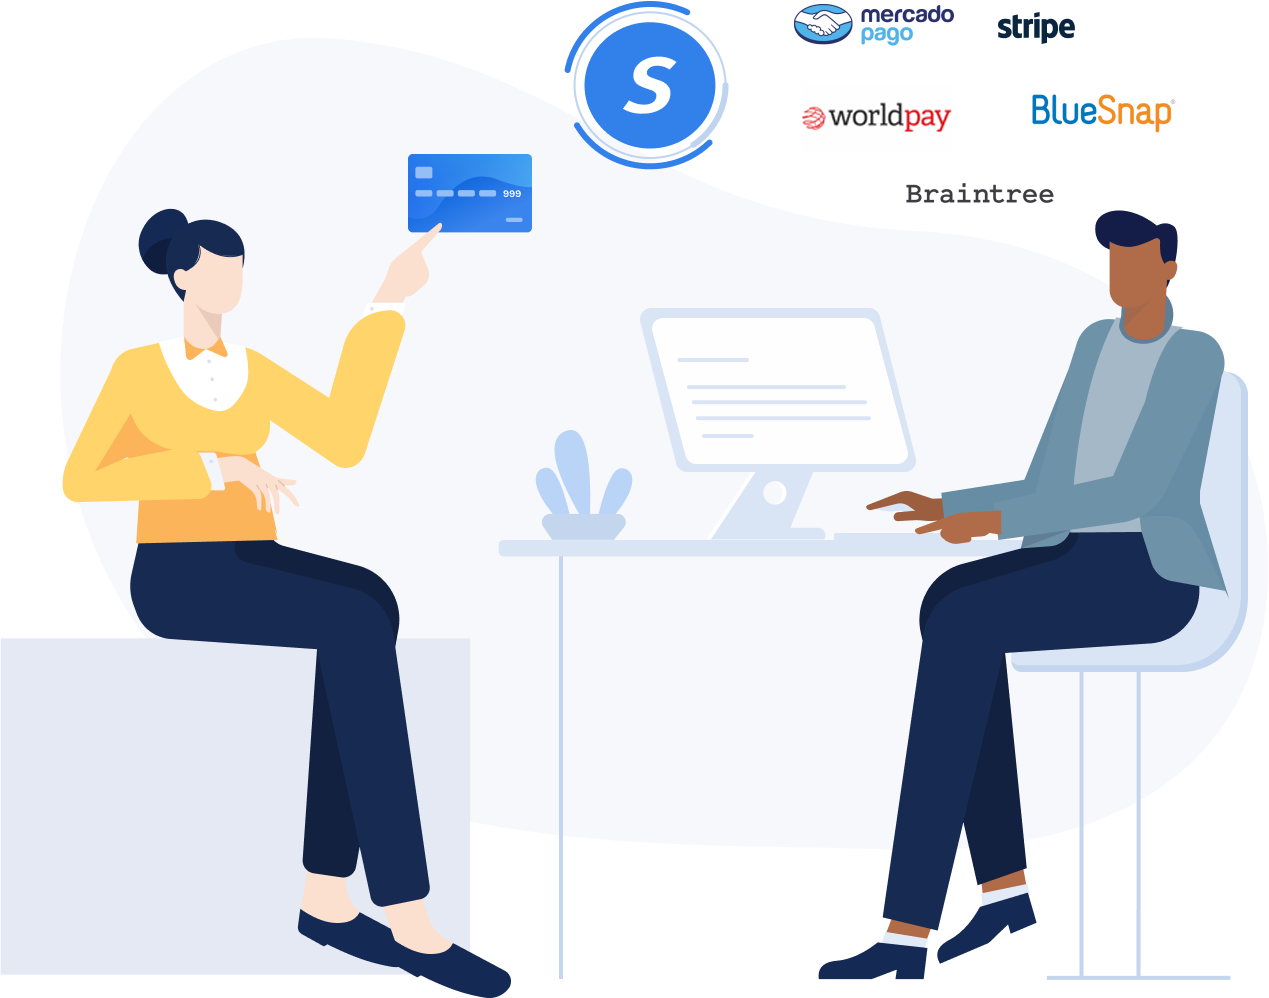 an image of two people sitting at a desk with various customer logos floating above their head